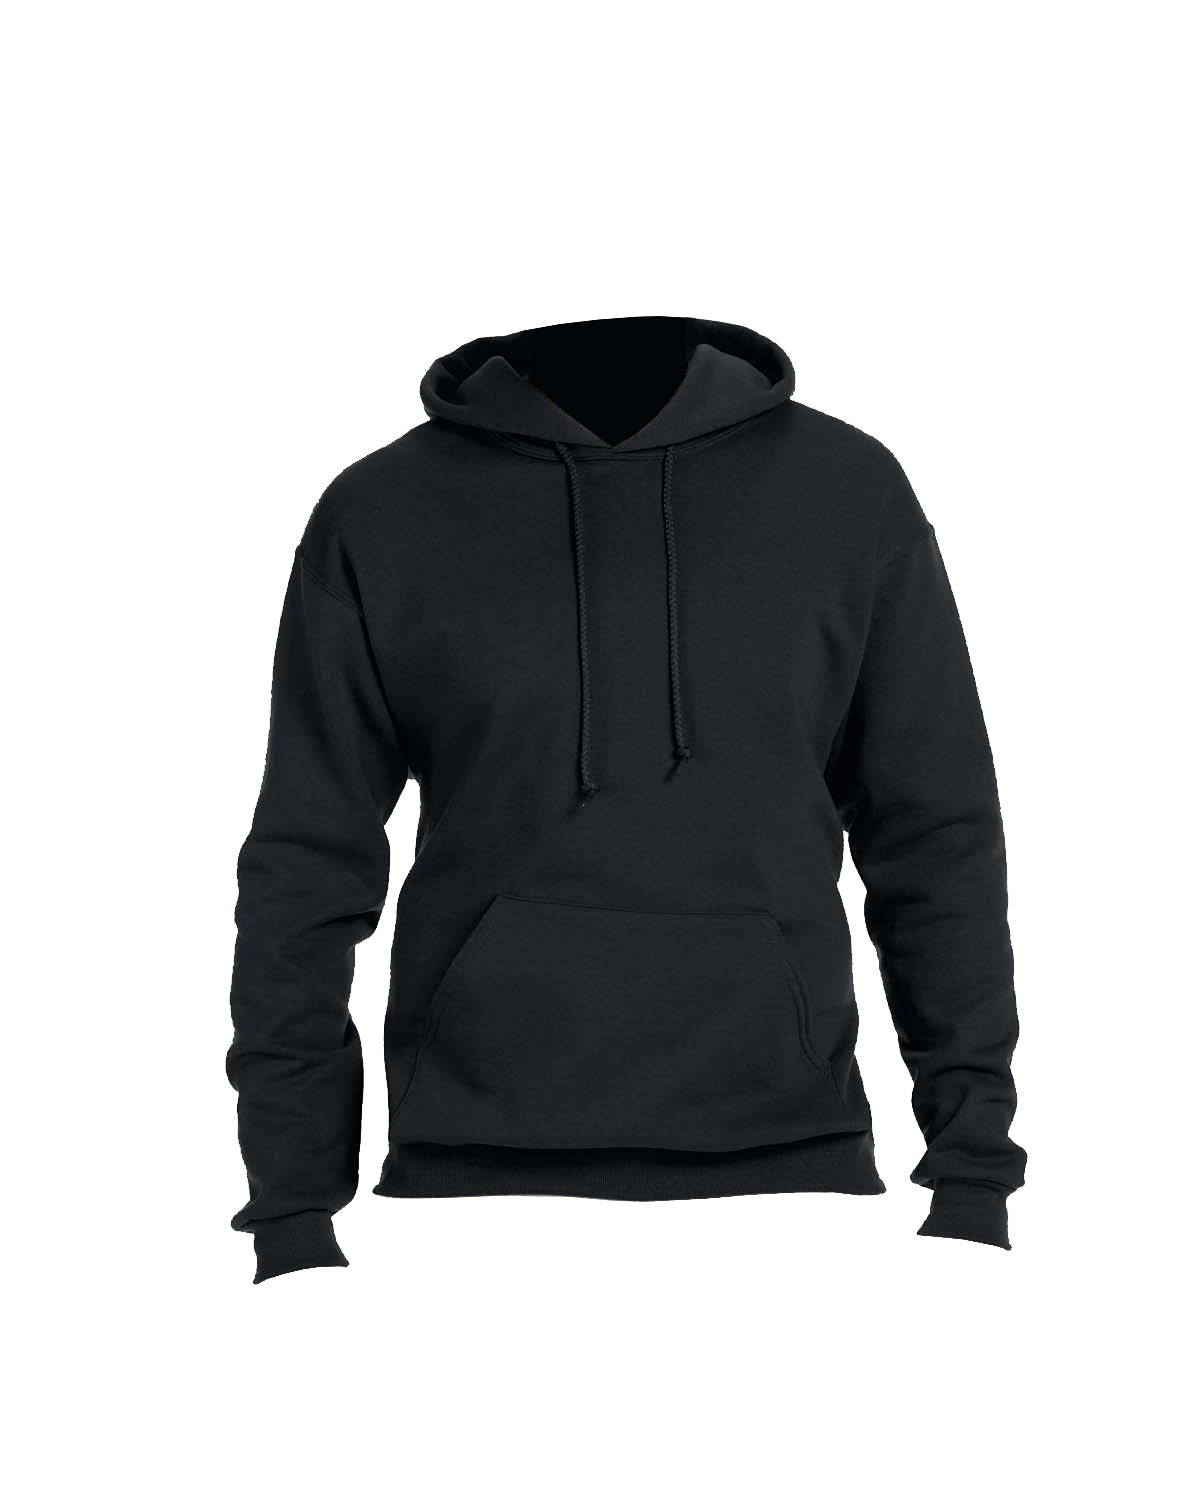 Adult black hooded sweatshirt front